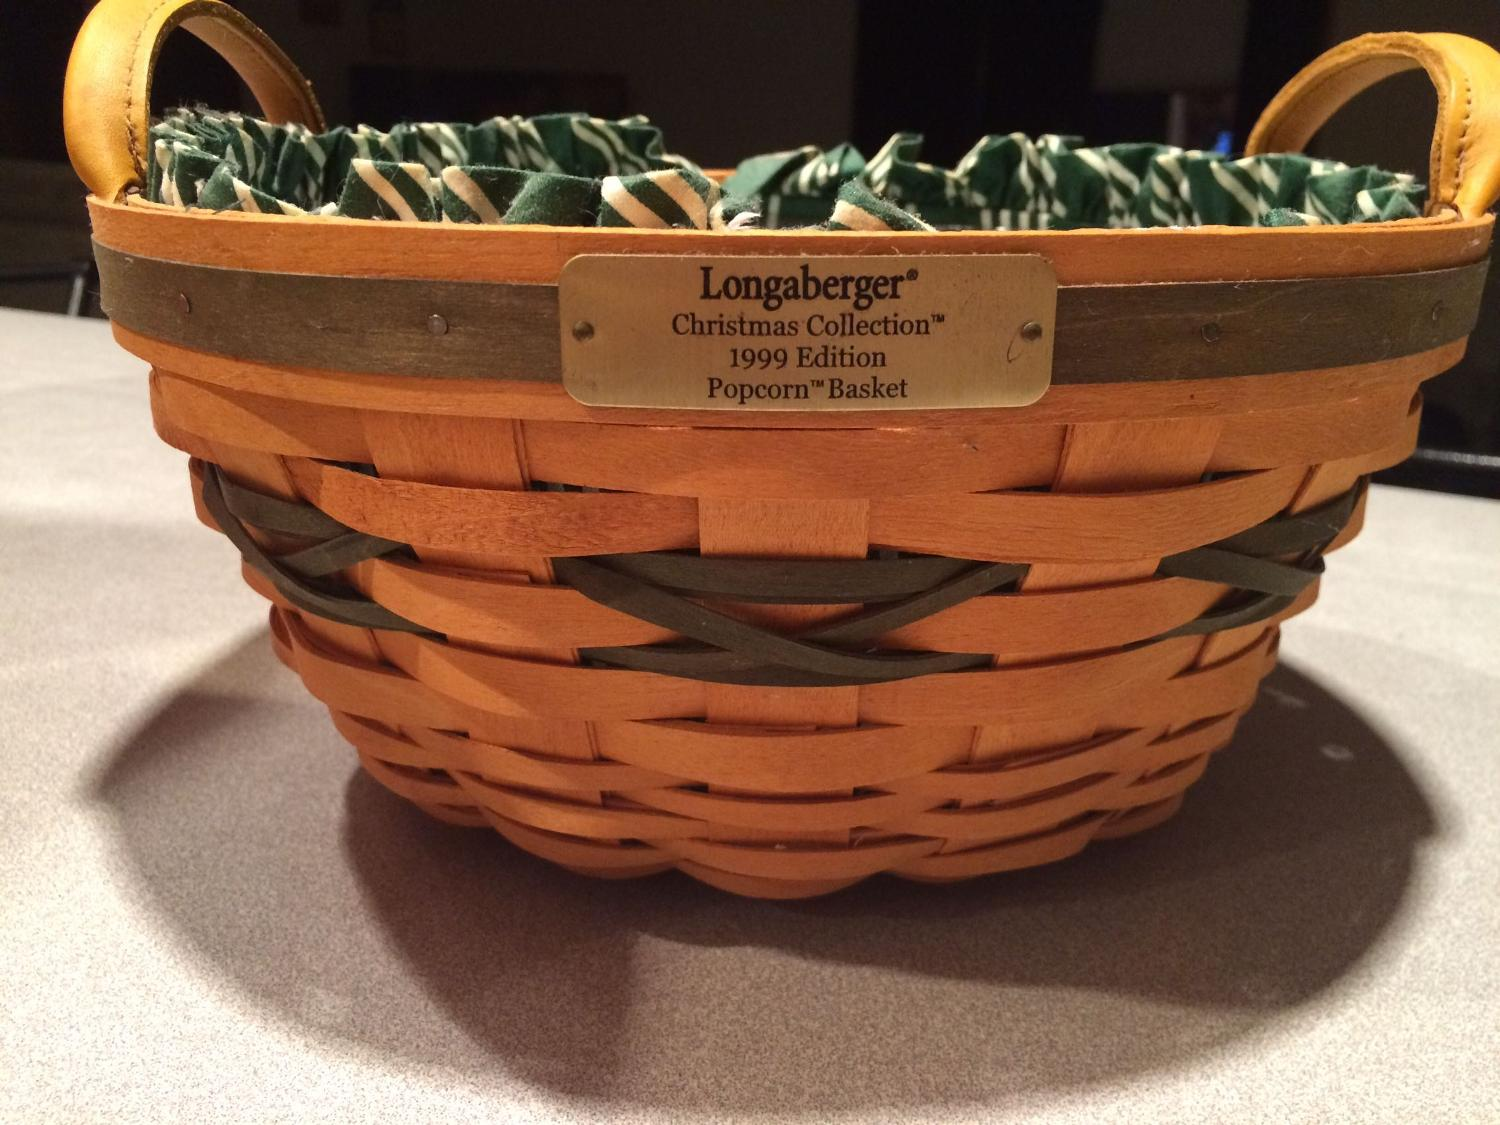 Best Longaberger 1999 Christmas Collection Popcorn Basket